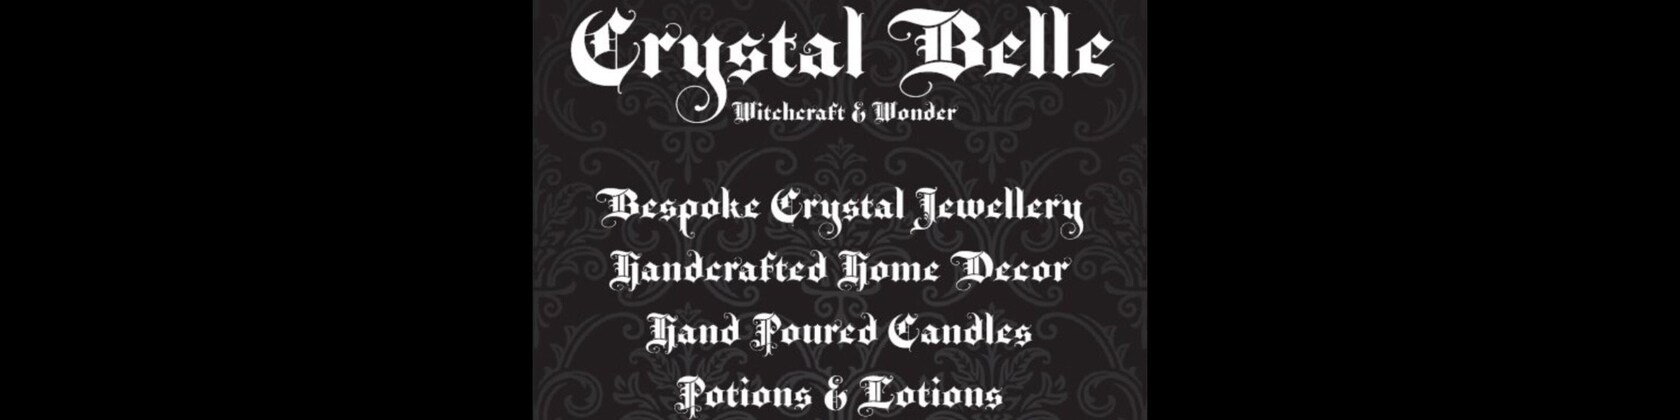 Crystal Belle Shop